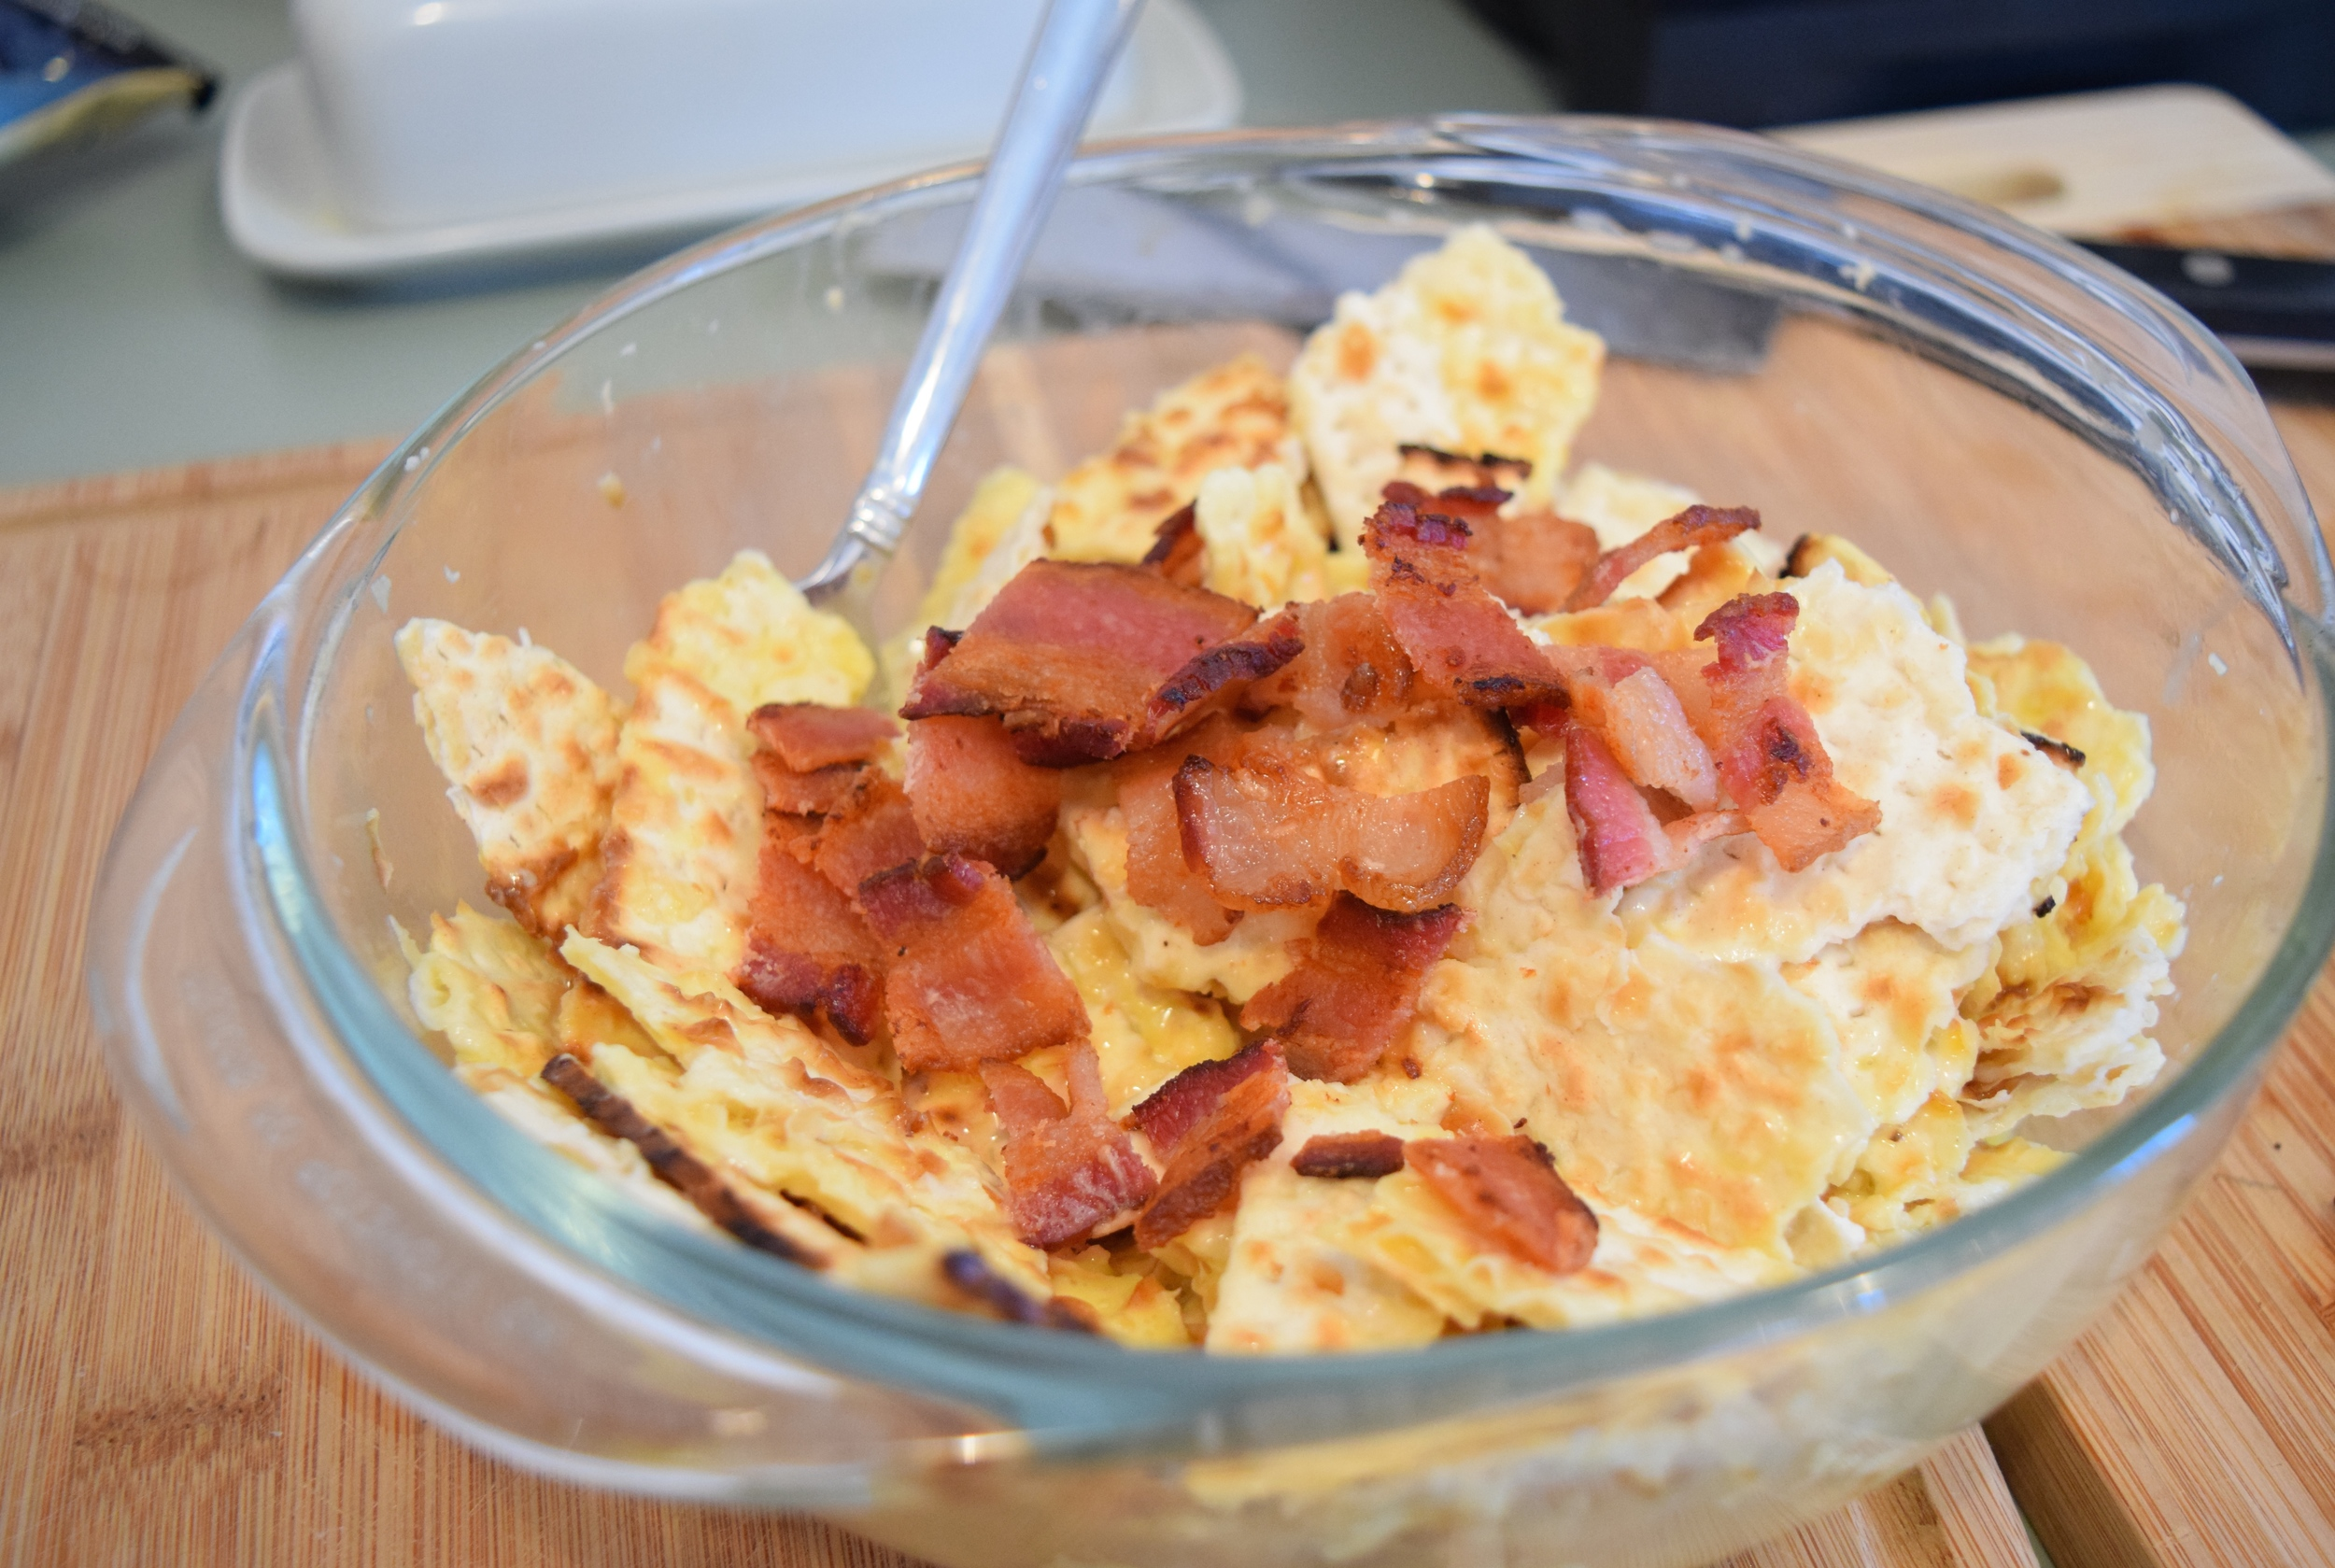 Toss the damp matza with egg and cooked and cooled bacon pieces.